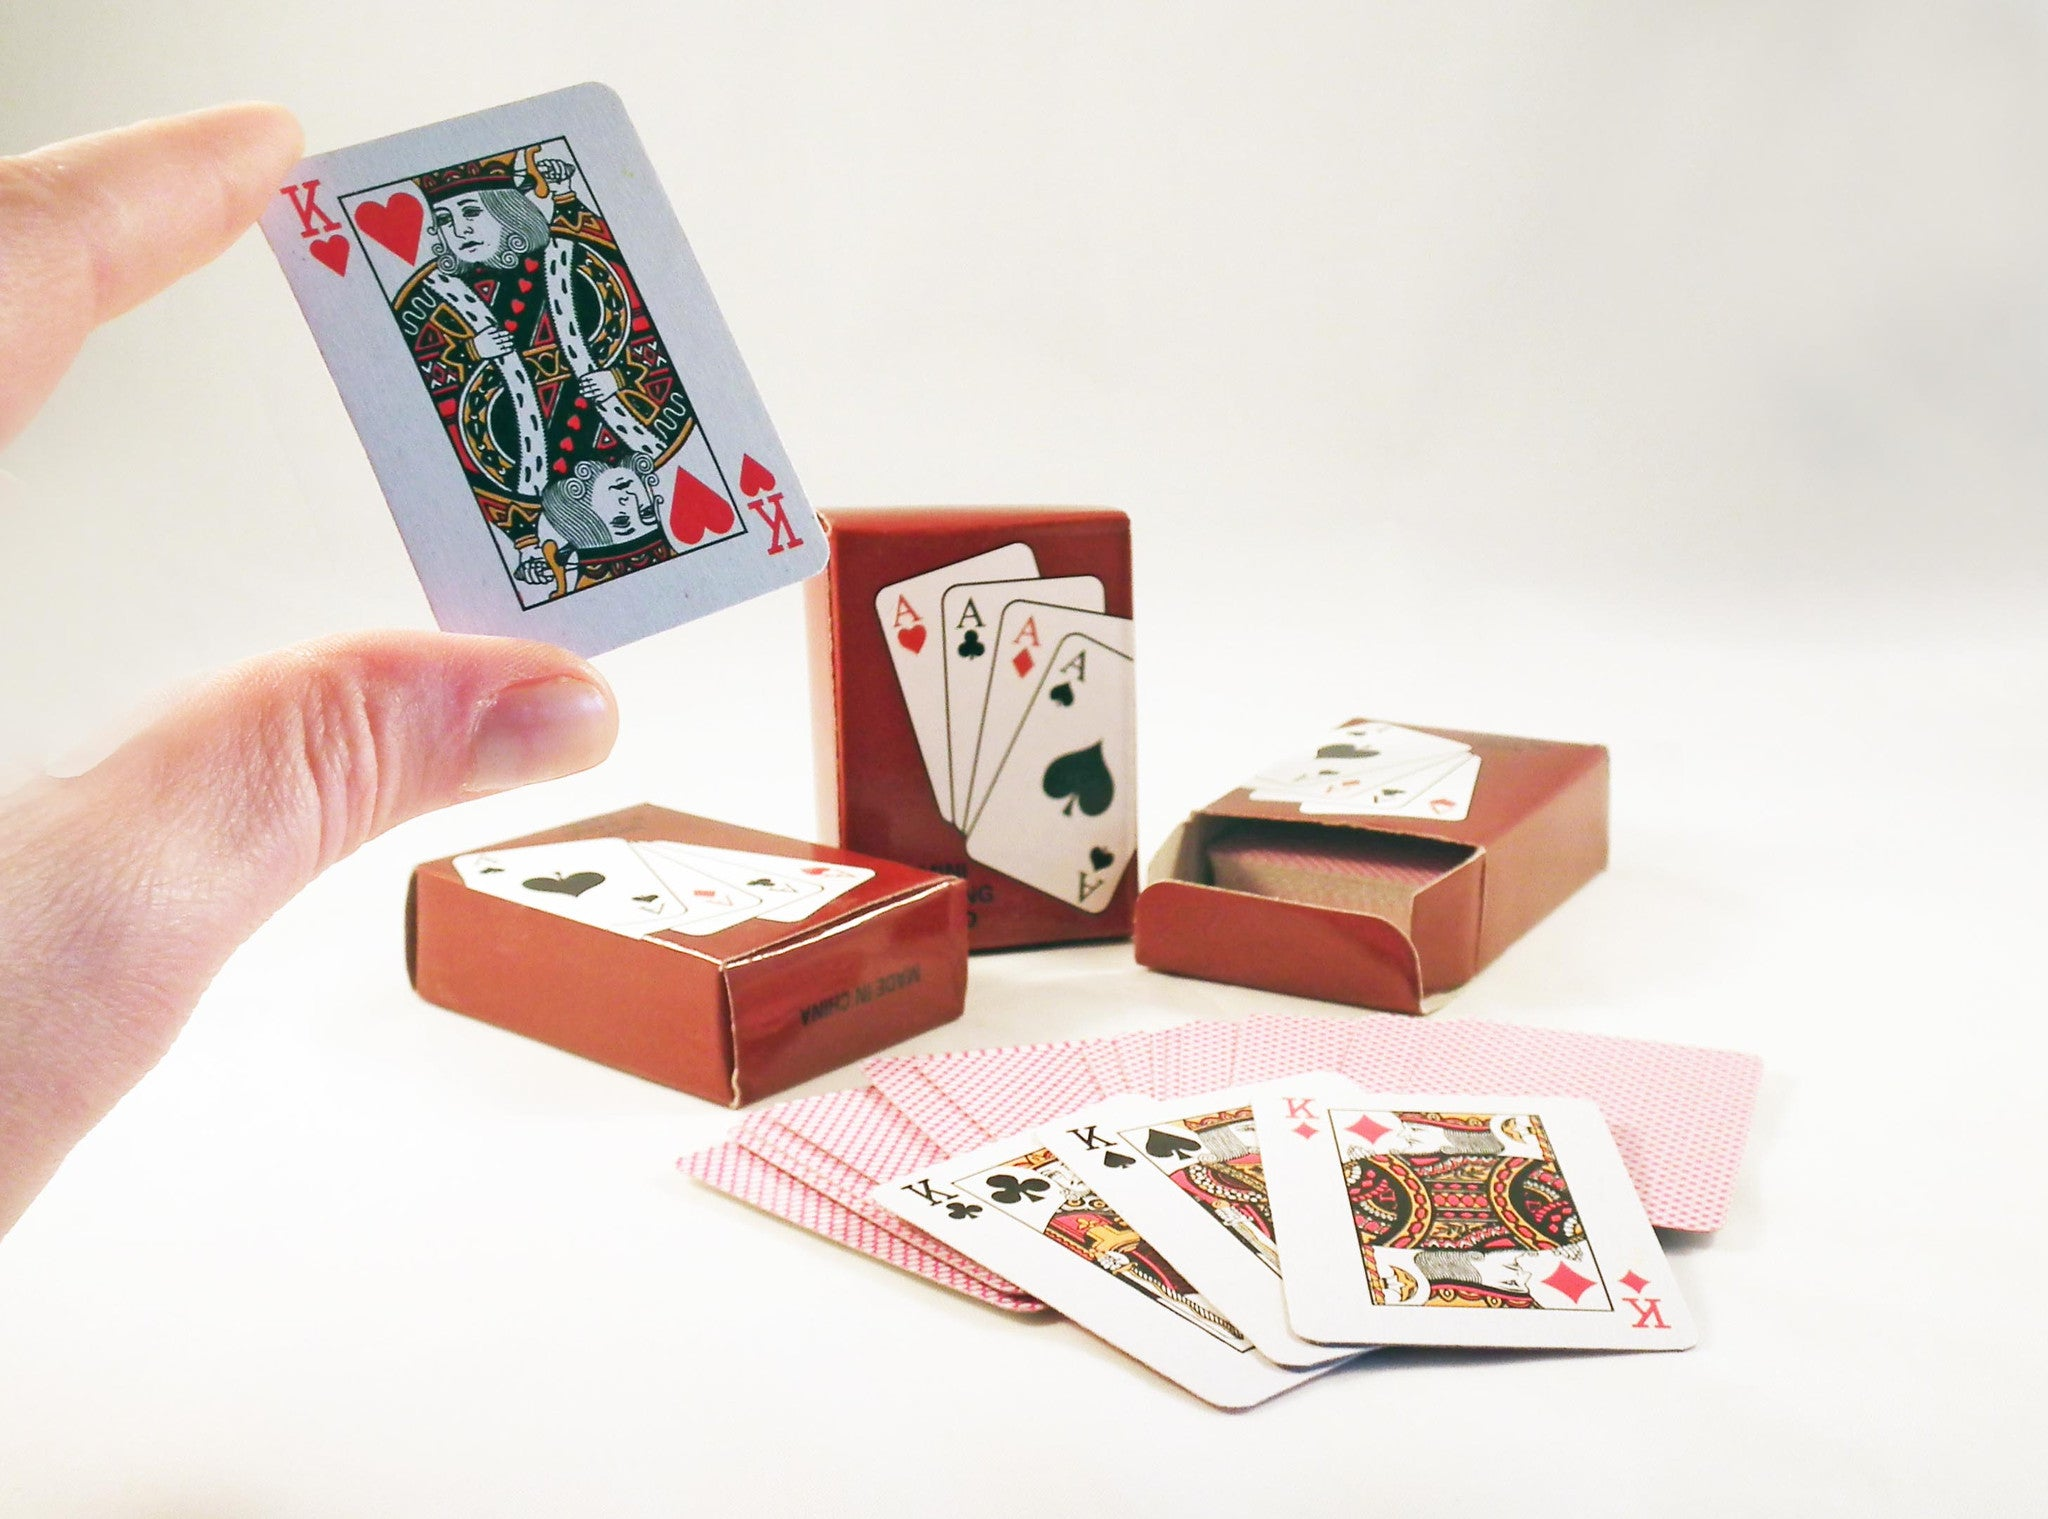 Cartes à Jouer Miniature Deck of Playing Cards - No Mercy Making